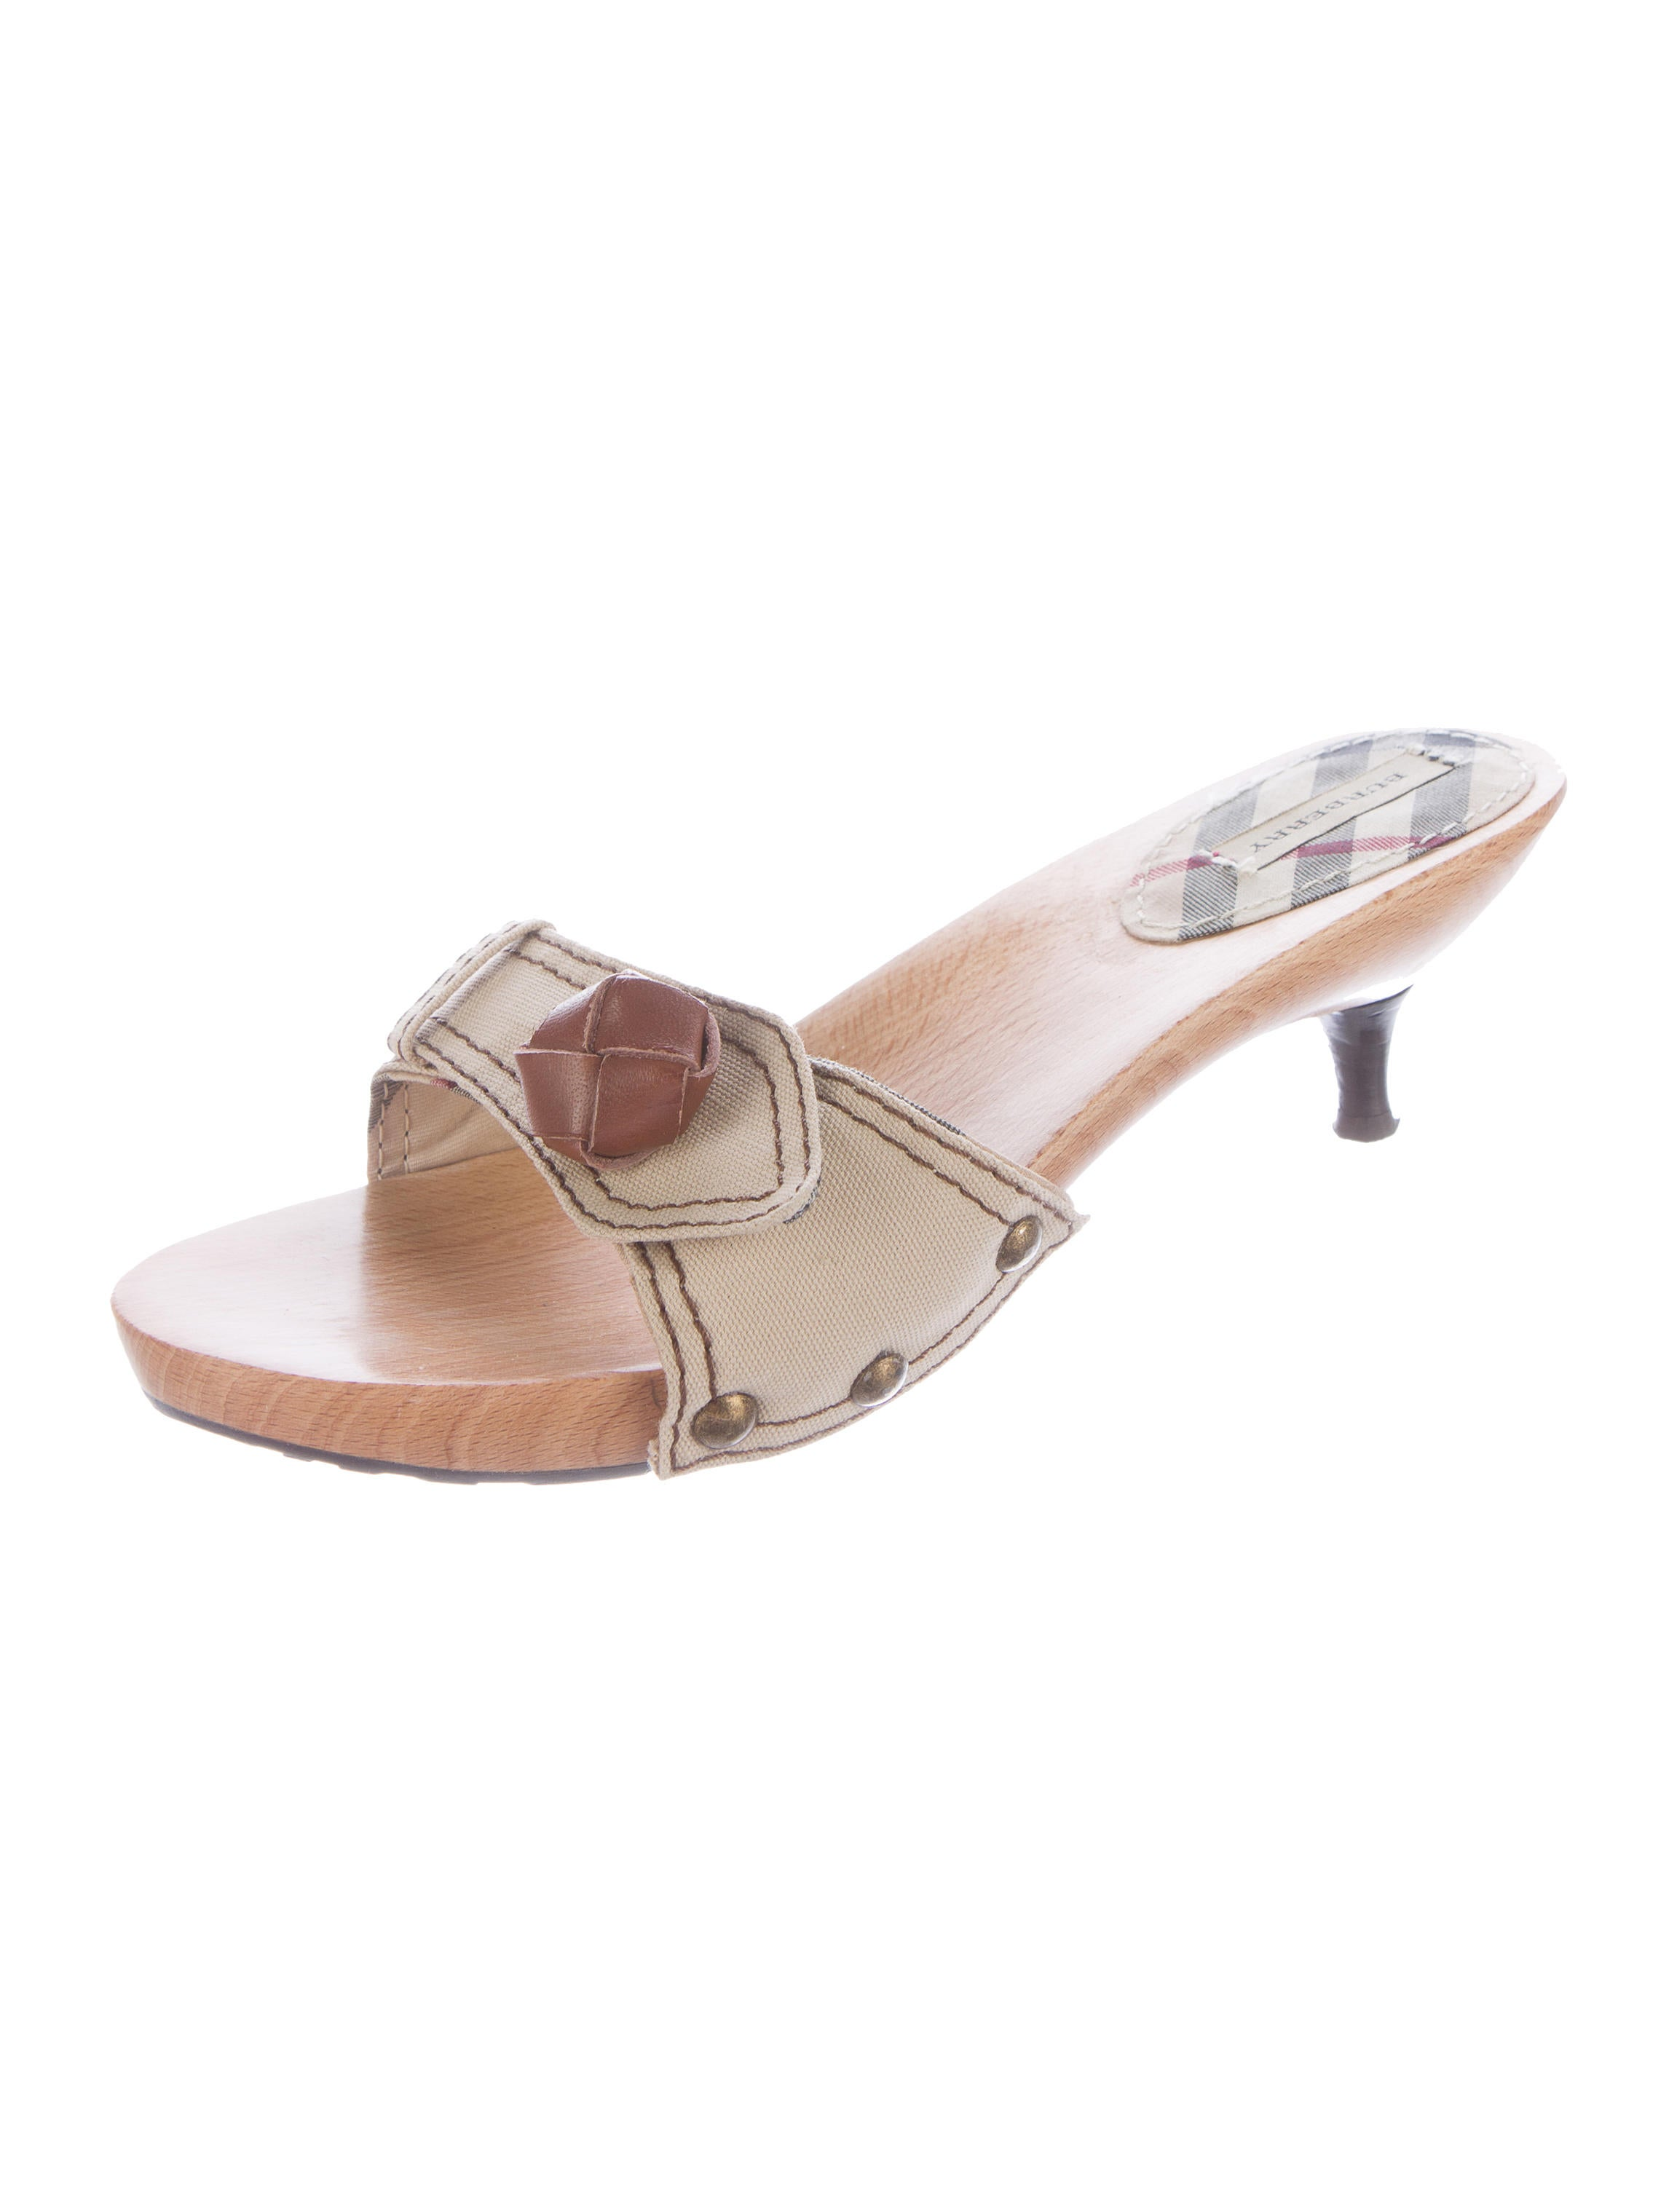 burberry canvas slide sandals shoes bur59288 the